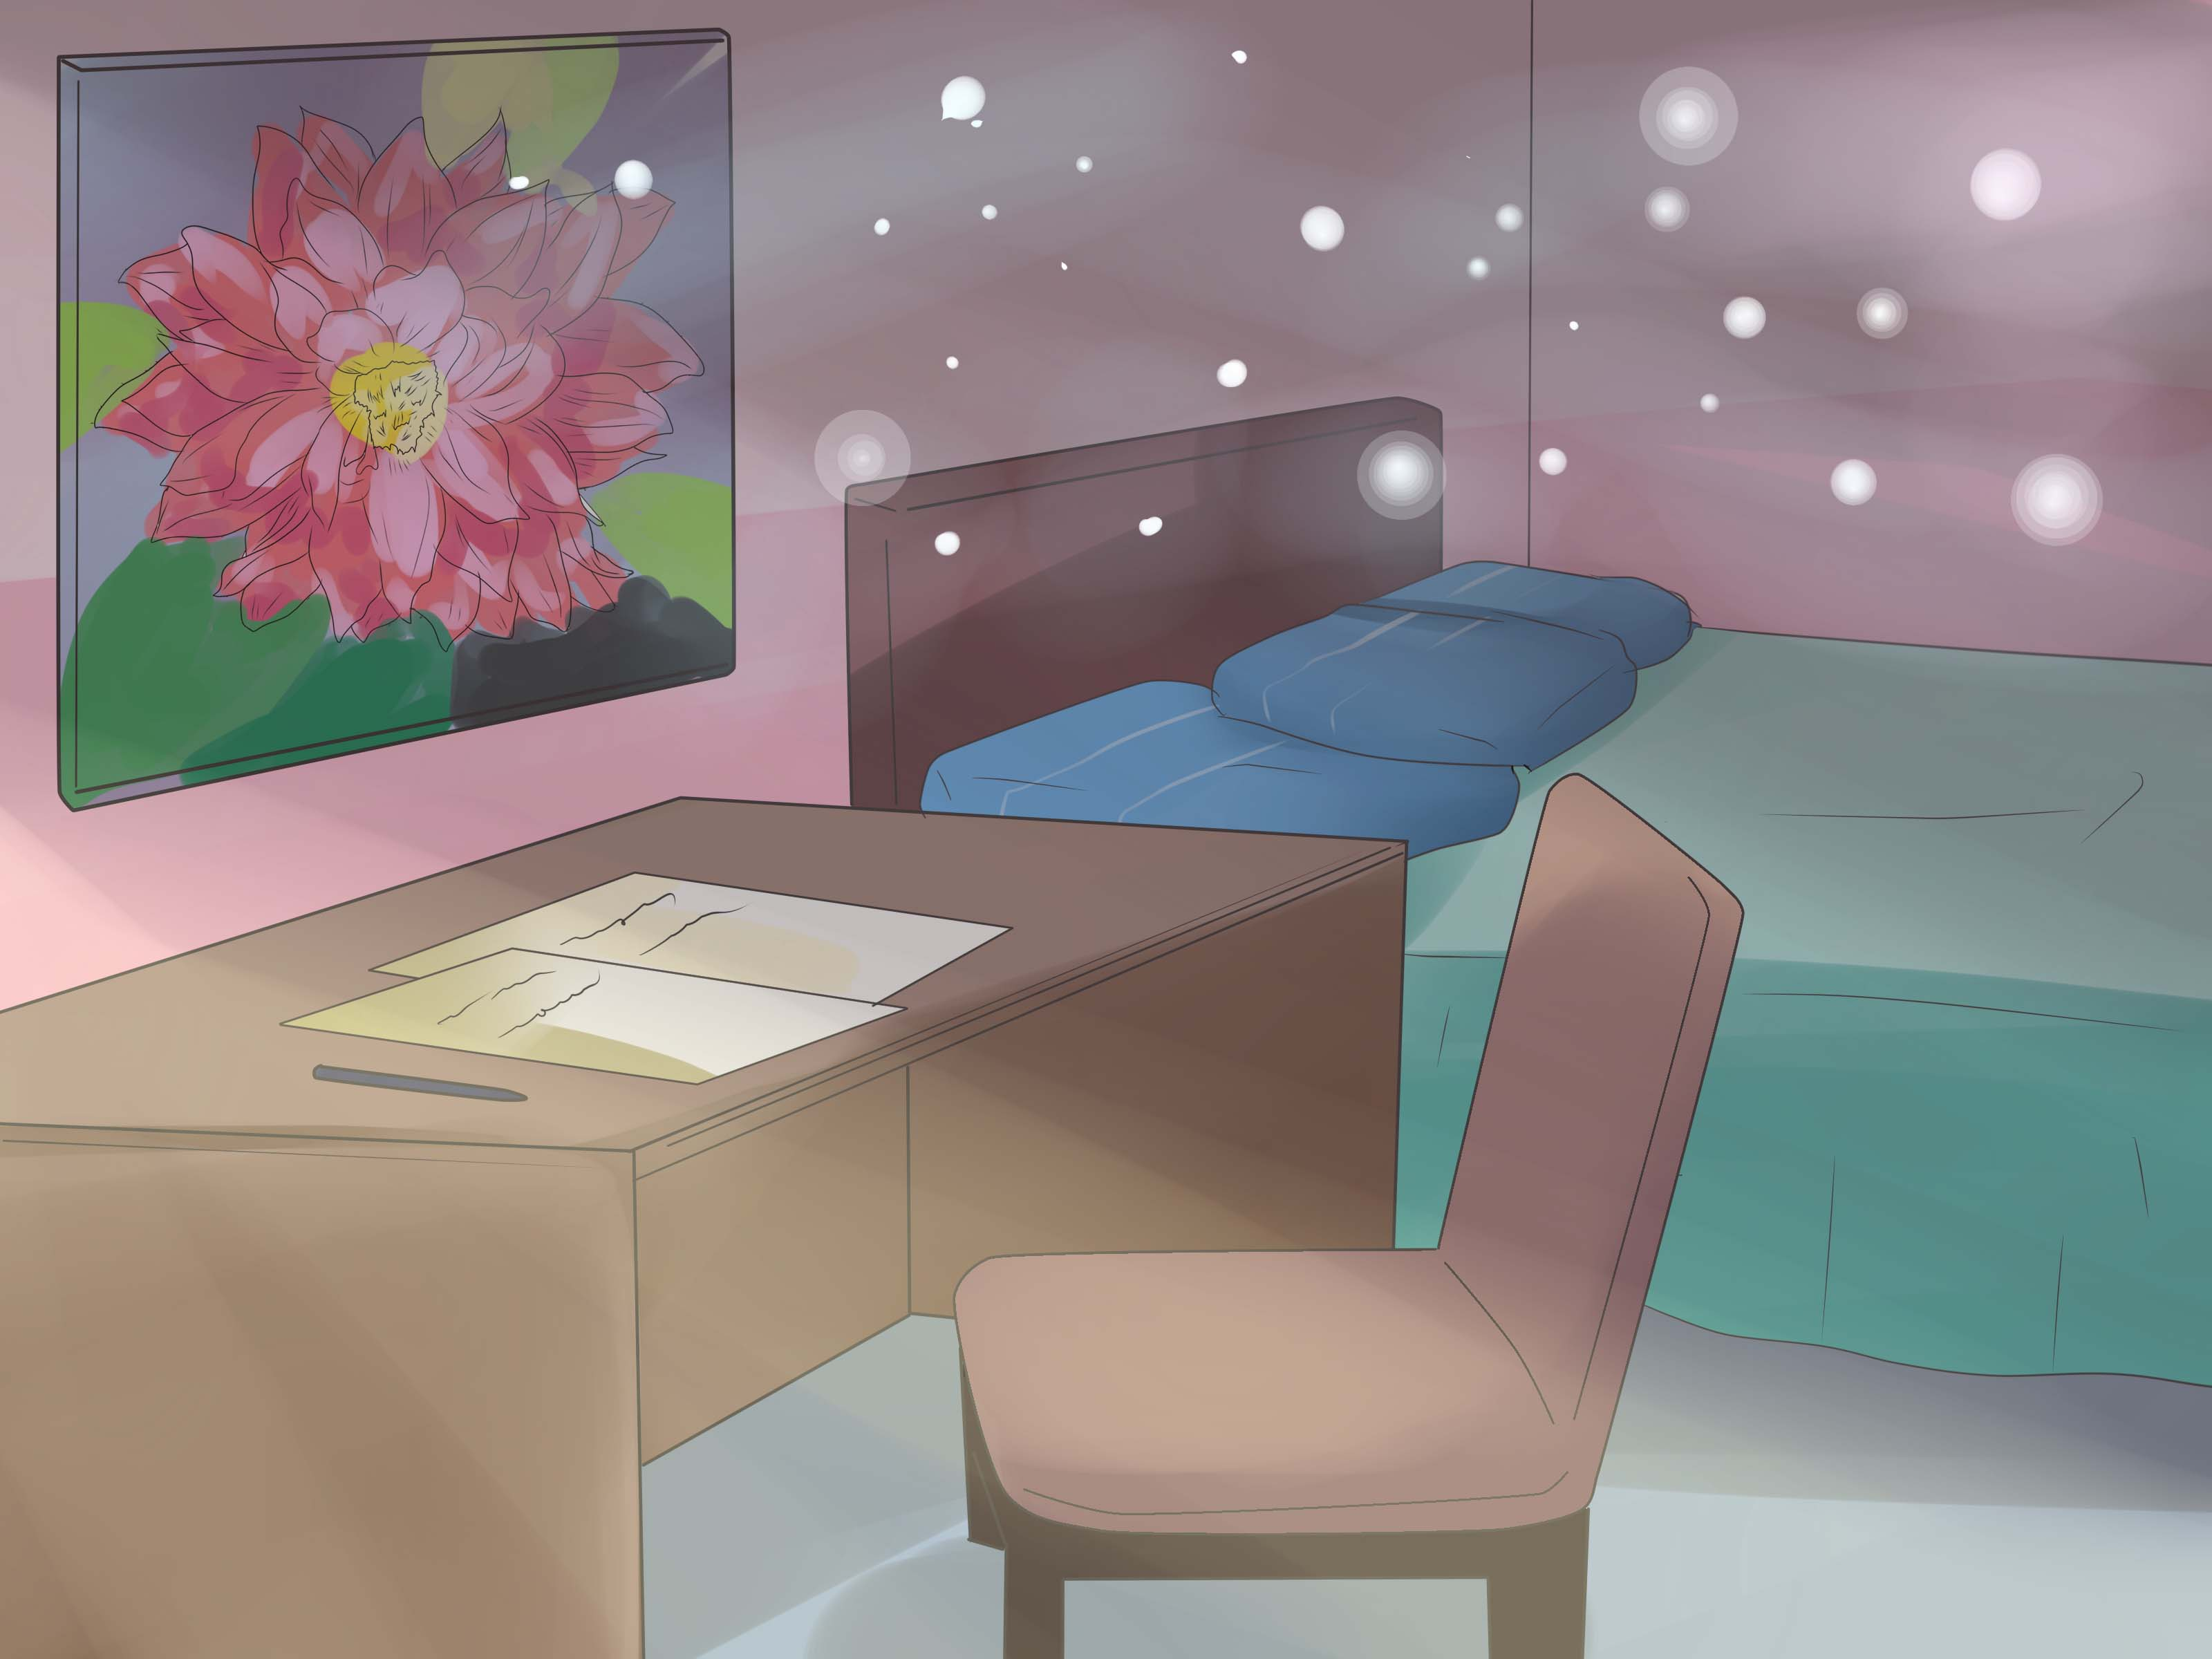 How to Make Your Room Look Cool 10 Steps with Pictures